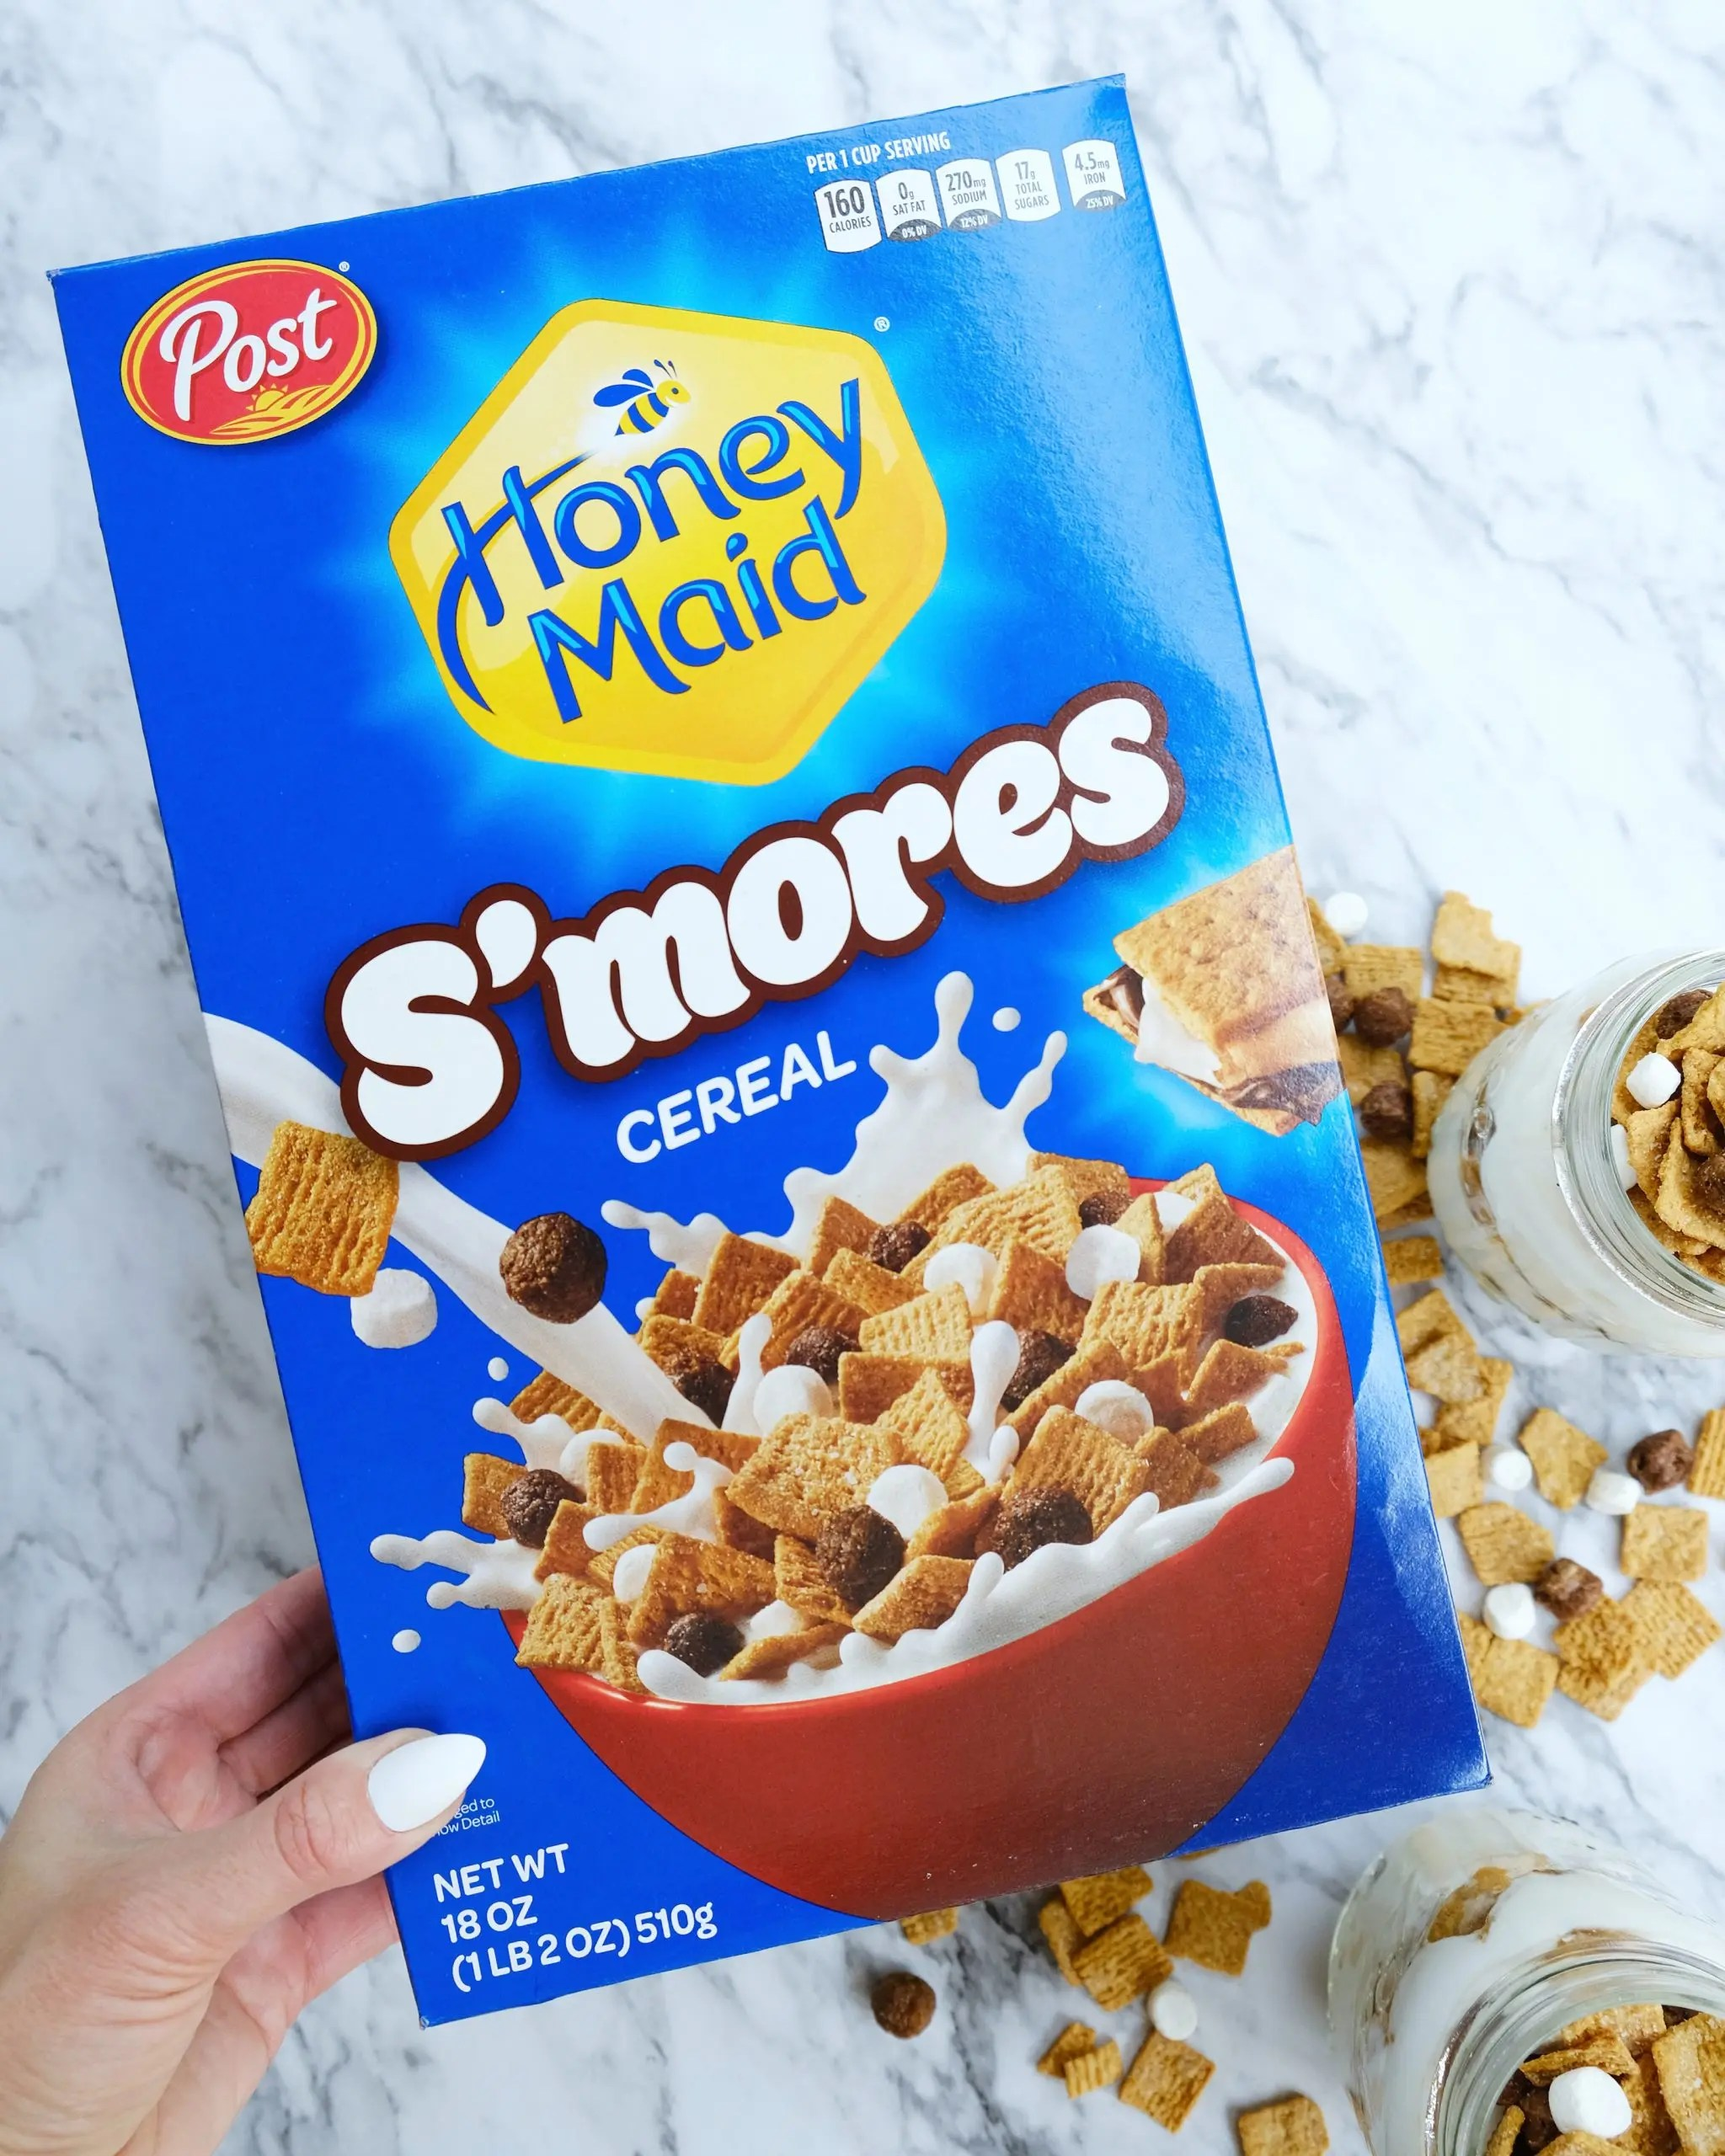 Post Honey Maid S'Mores Breakfast Cereal